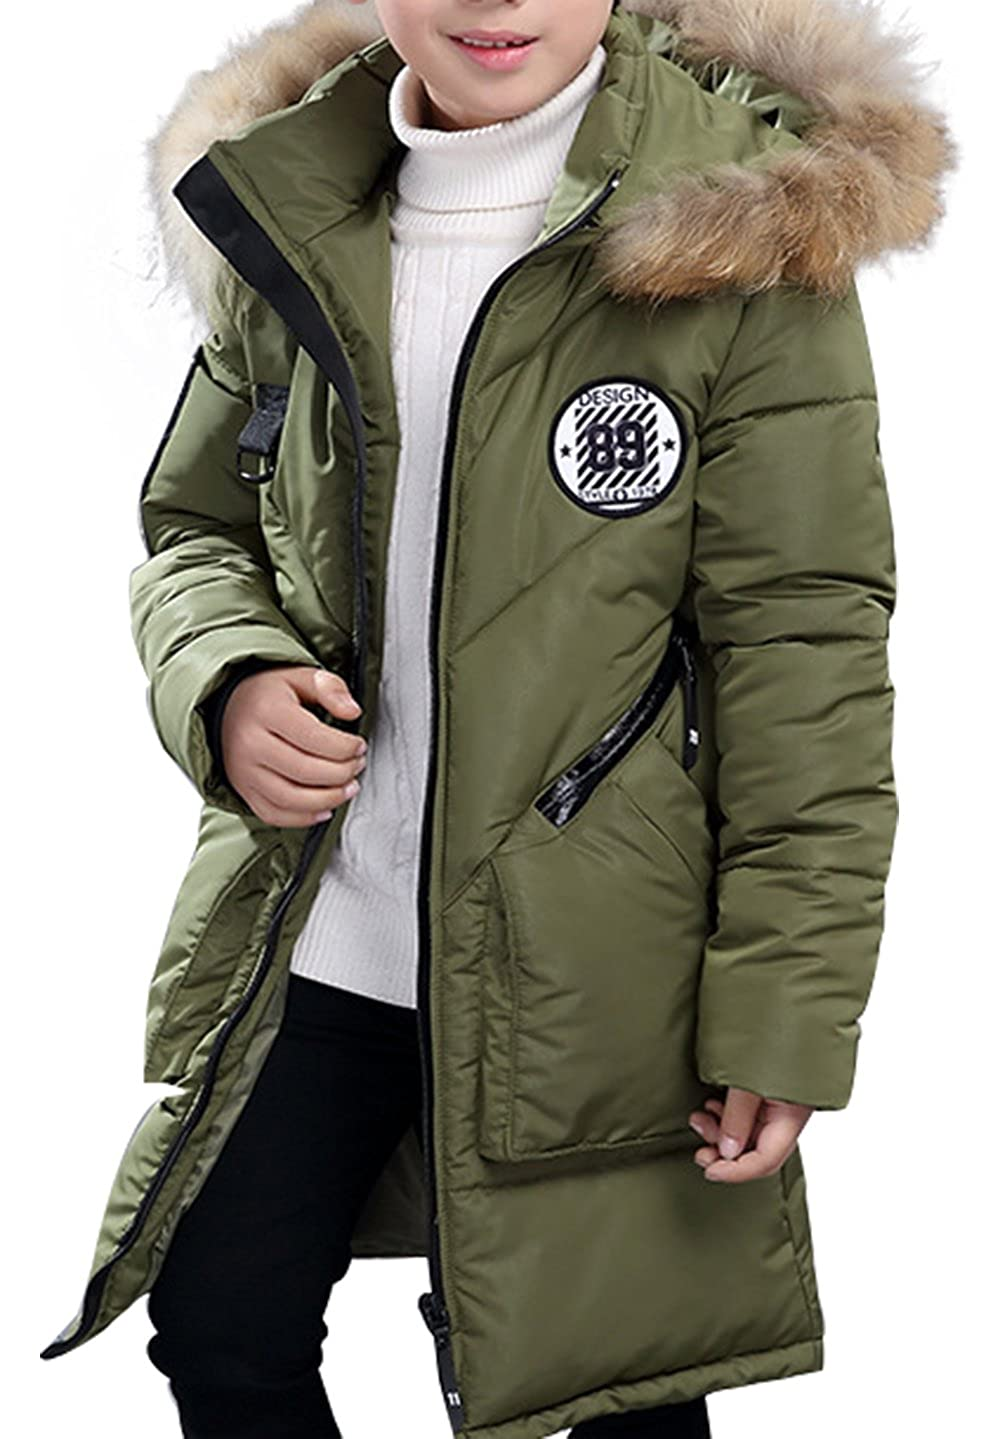 SellerFun Boy Winter Cotton Thick Hooded Parka Outwear Coat With Faux Fur Trim